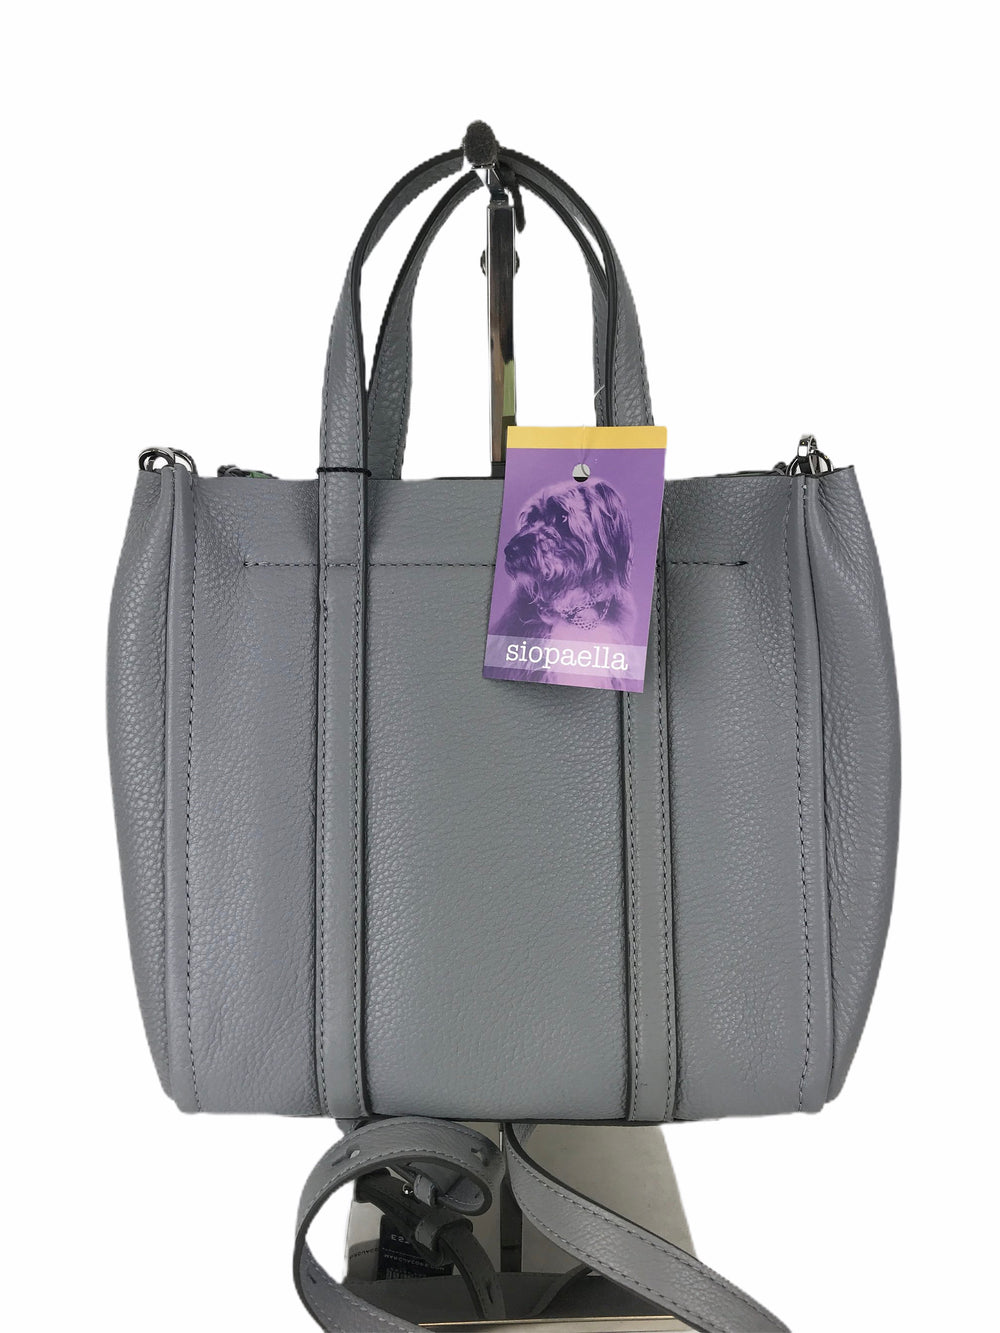 Marc Jacobs Grey Mini Editor Crossbody Tote  -  As Seen on Instagram 16/08/2020